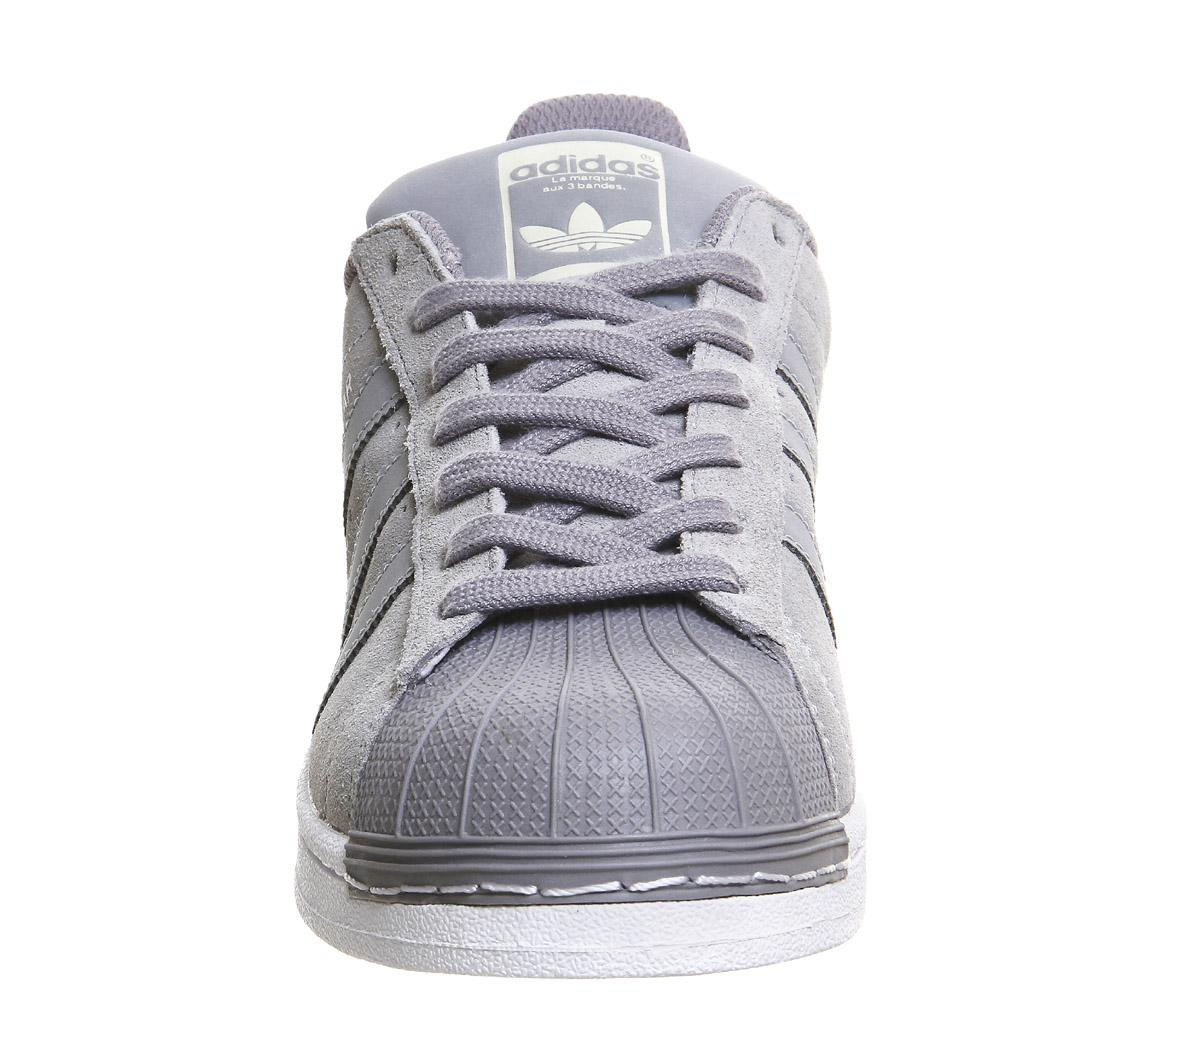 adidas Superstar 1 Suede and Leather Low-Top Sneakers in Grey (Grey) for Men